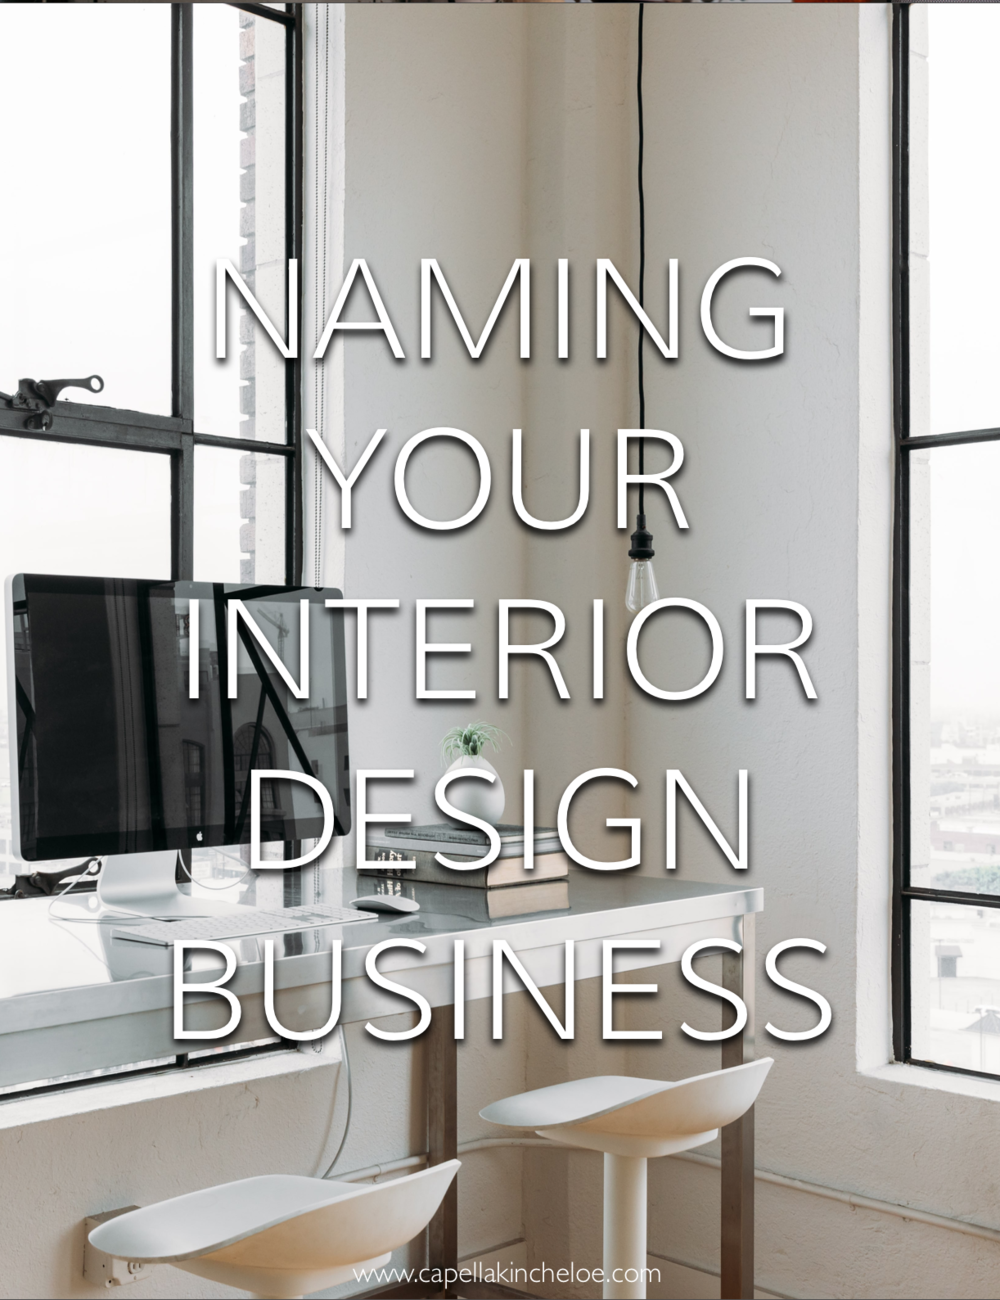 Naming your interior design business isn't easy, but there is one HUGE MISTAKE YOU SHOULD WATCH OUT FOR. #interiordesignbusiness #cktradesecrets #interiordesignbusinessname